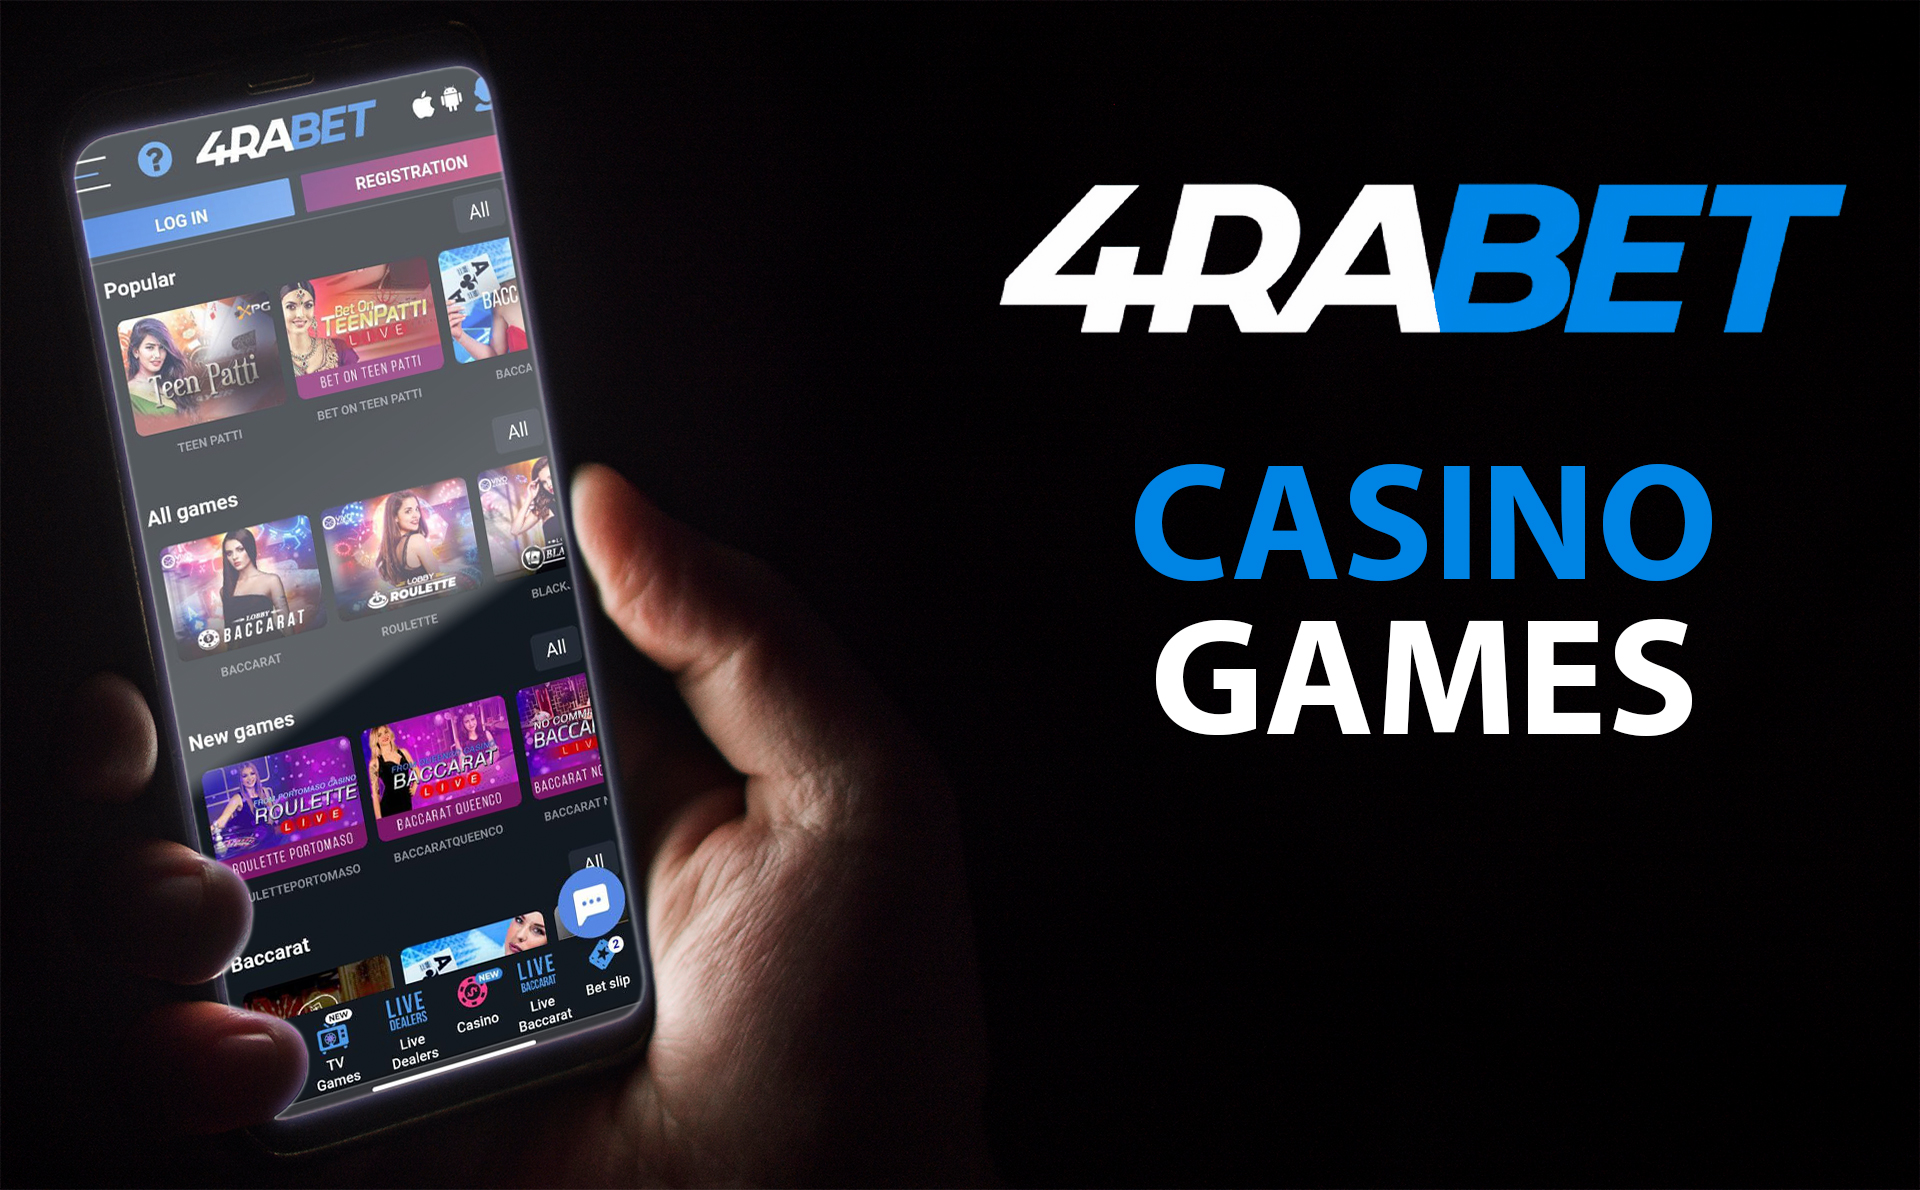 You can play all the favorite types of caino games at 4rabet.